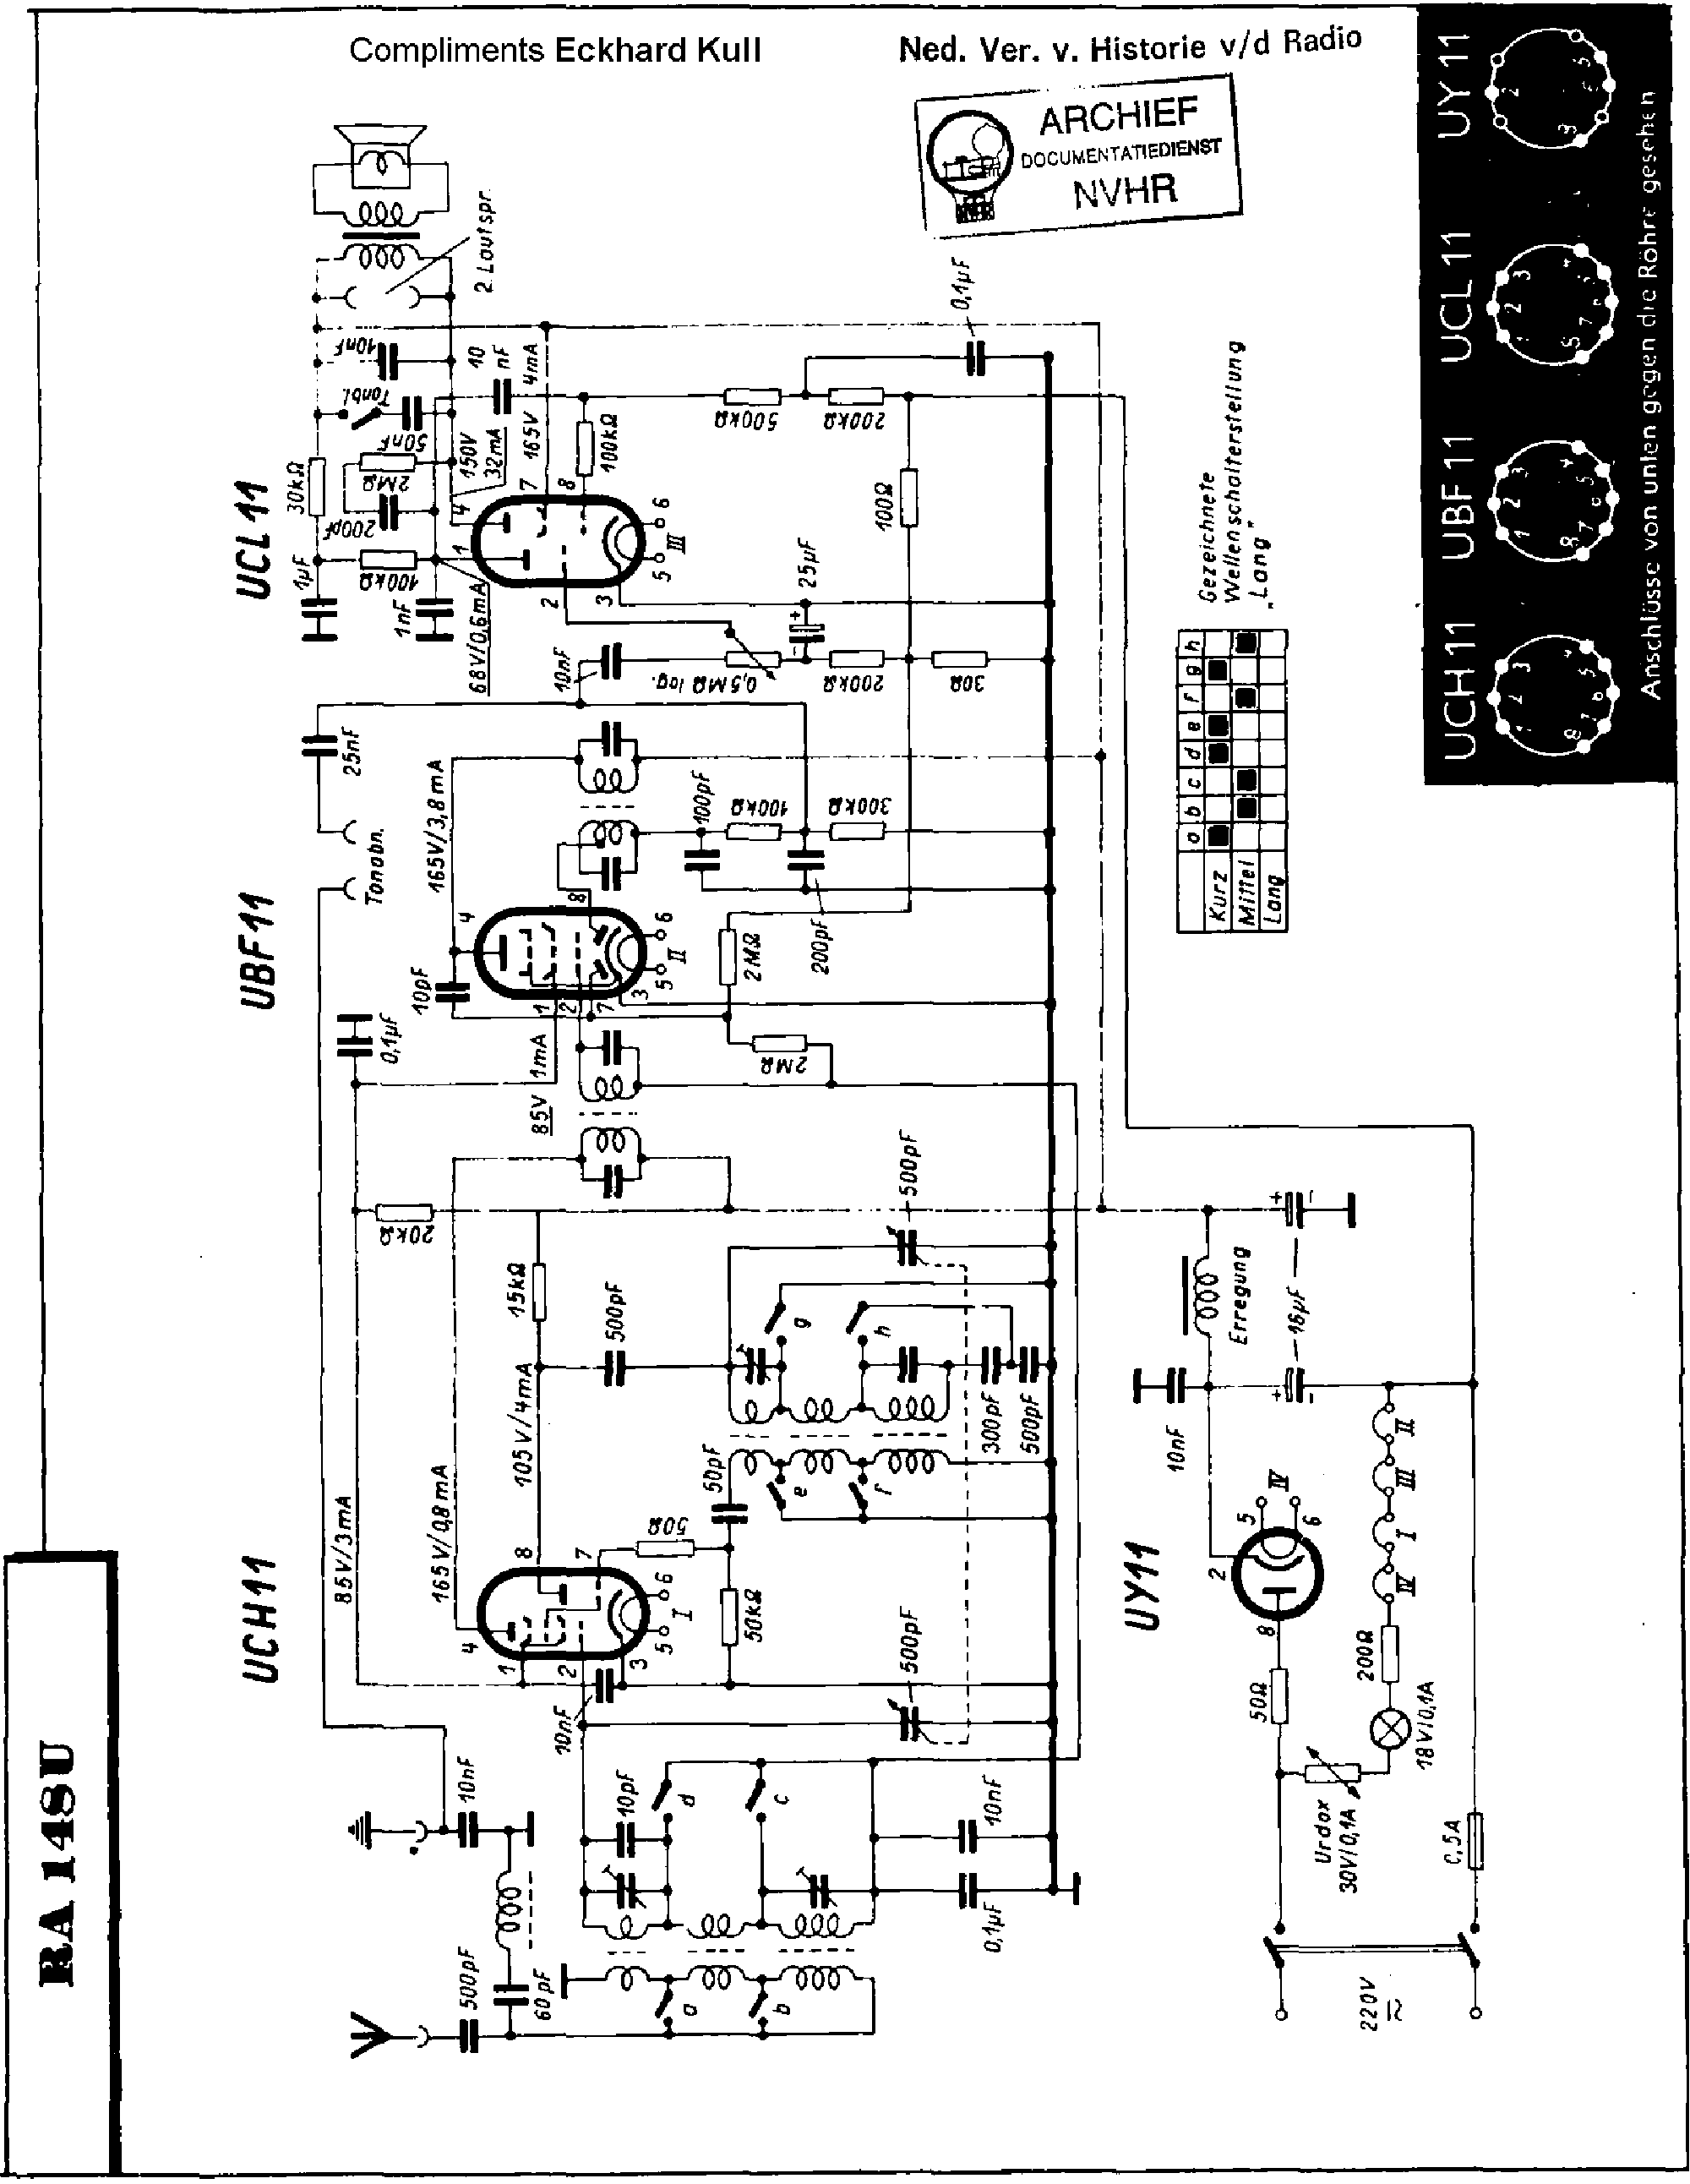 PHILIPS RA148U AC-DC RECEIVER SM service manual (1st page)